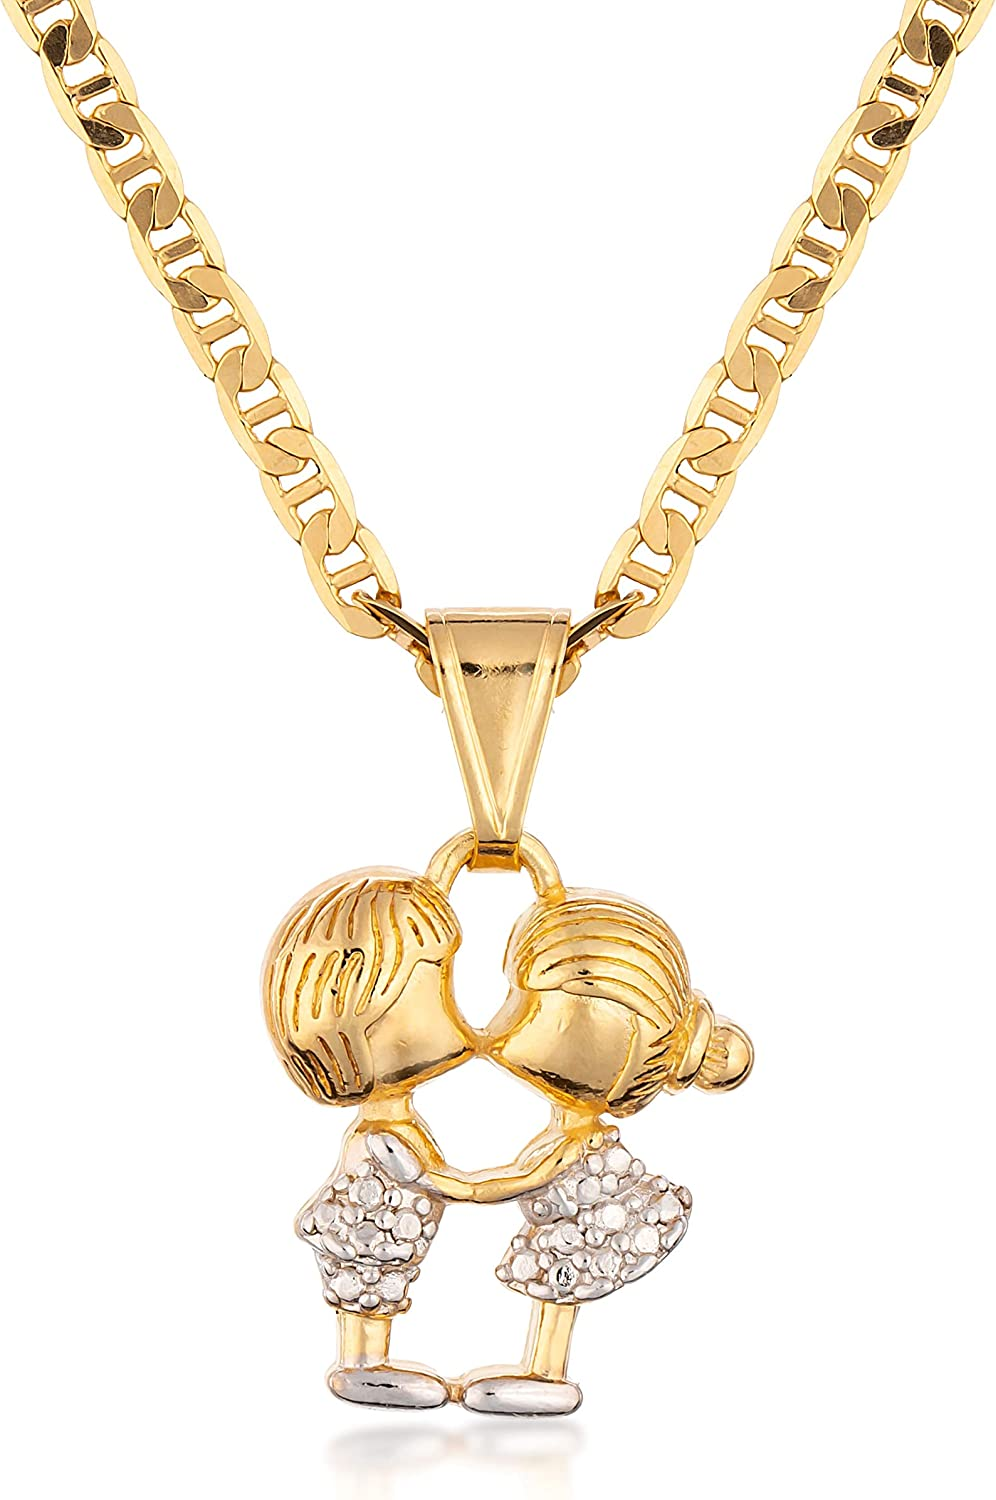 Barzel 18K Gold Plated Flat Mariner / Marina 060 3MM Chain Necklace With Young Love Kissing Charm Pendant